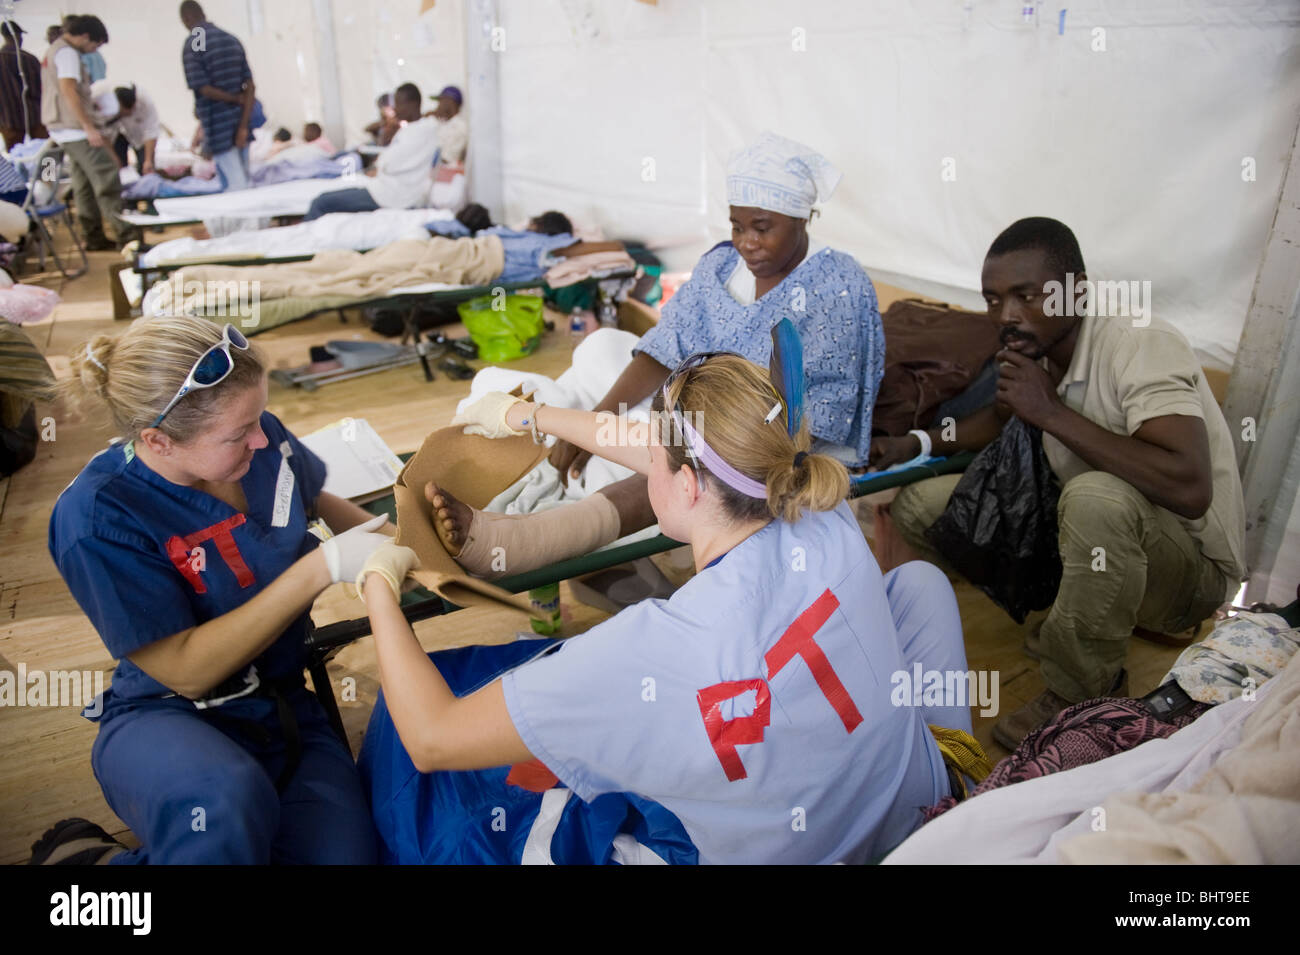 Patients receive medical care in Miami University field hospital after a 7.0 Mw earthquake struck Haiti on the 12th - Stock Image